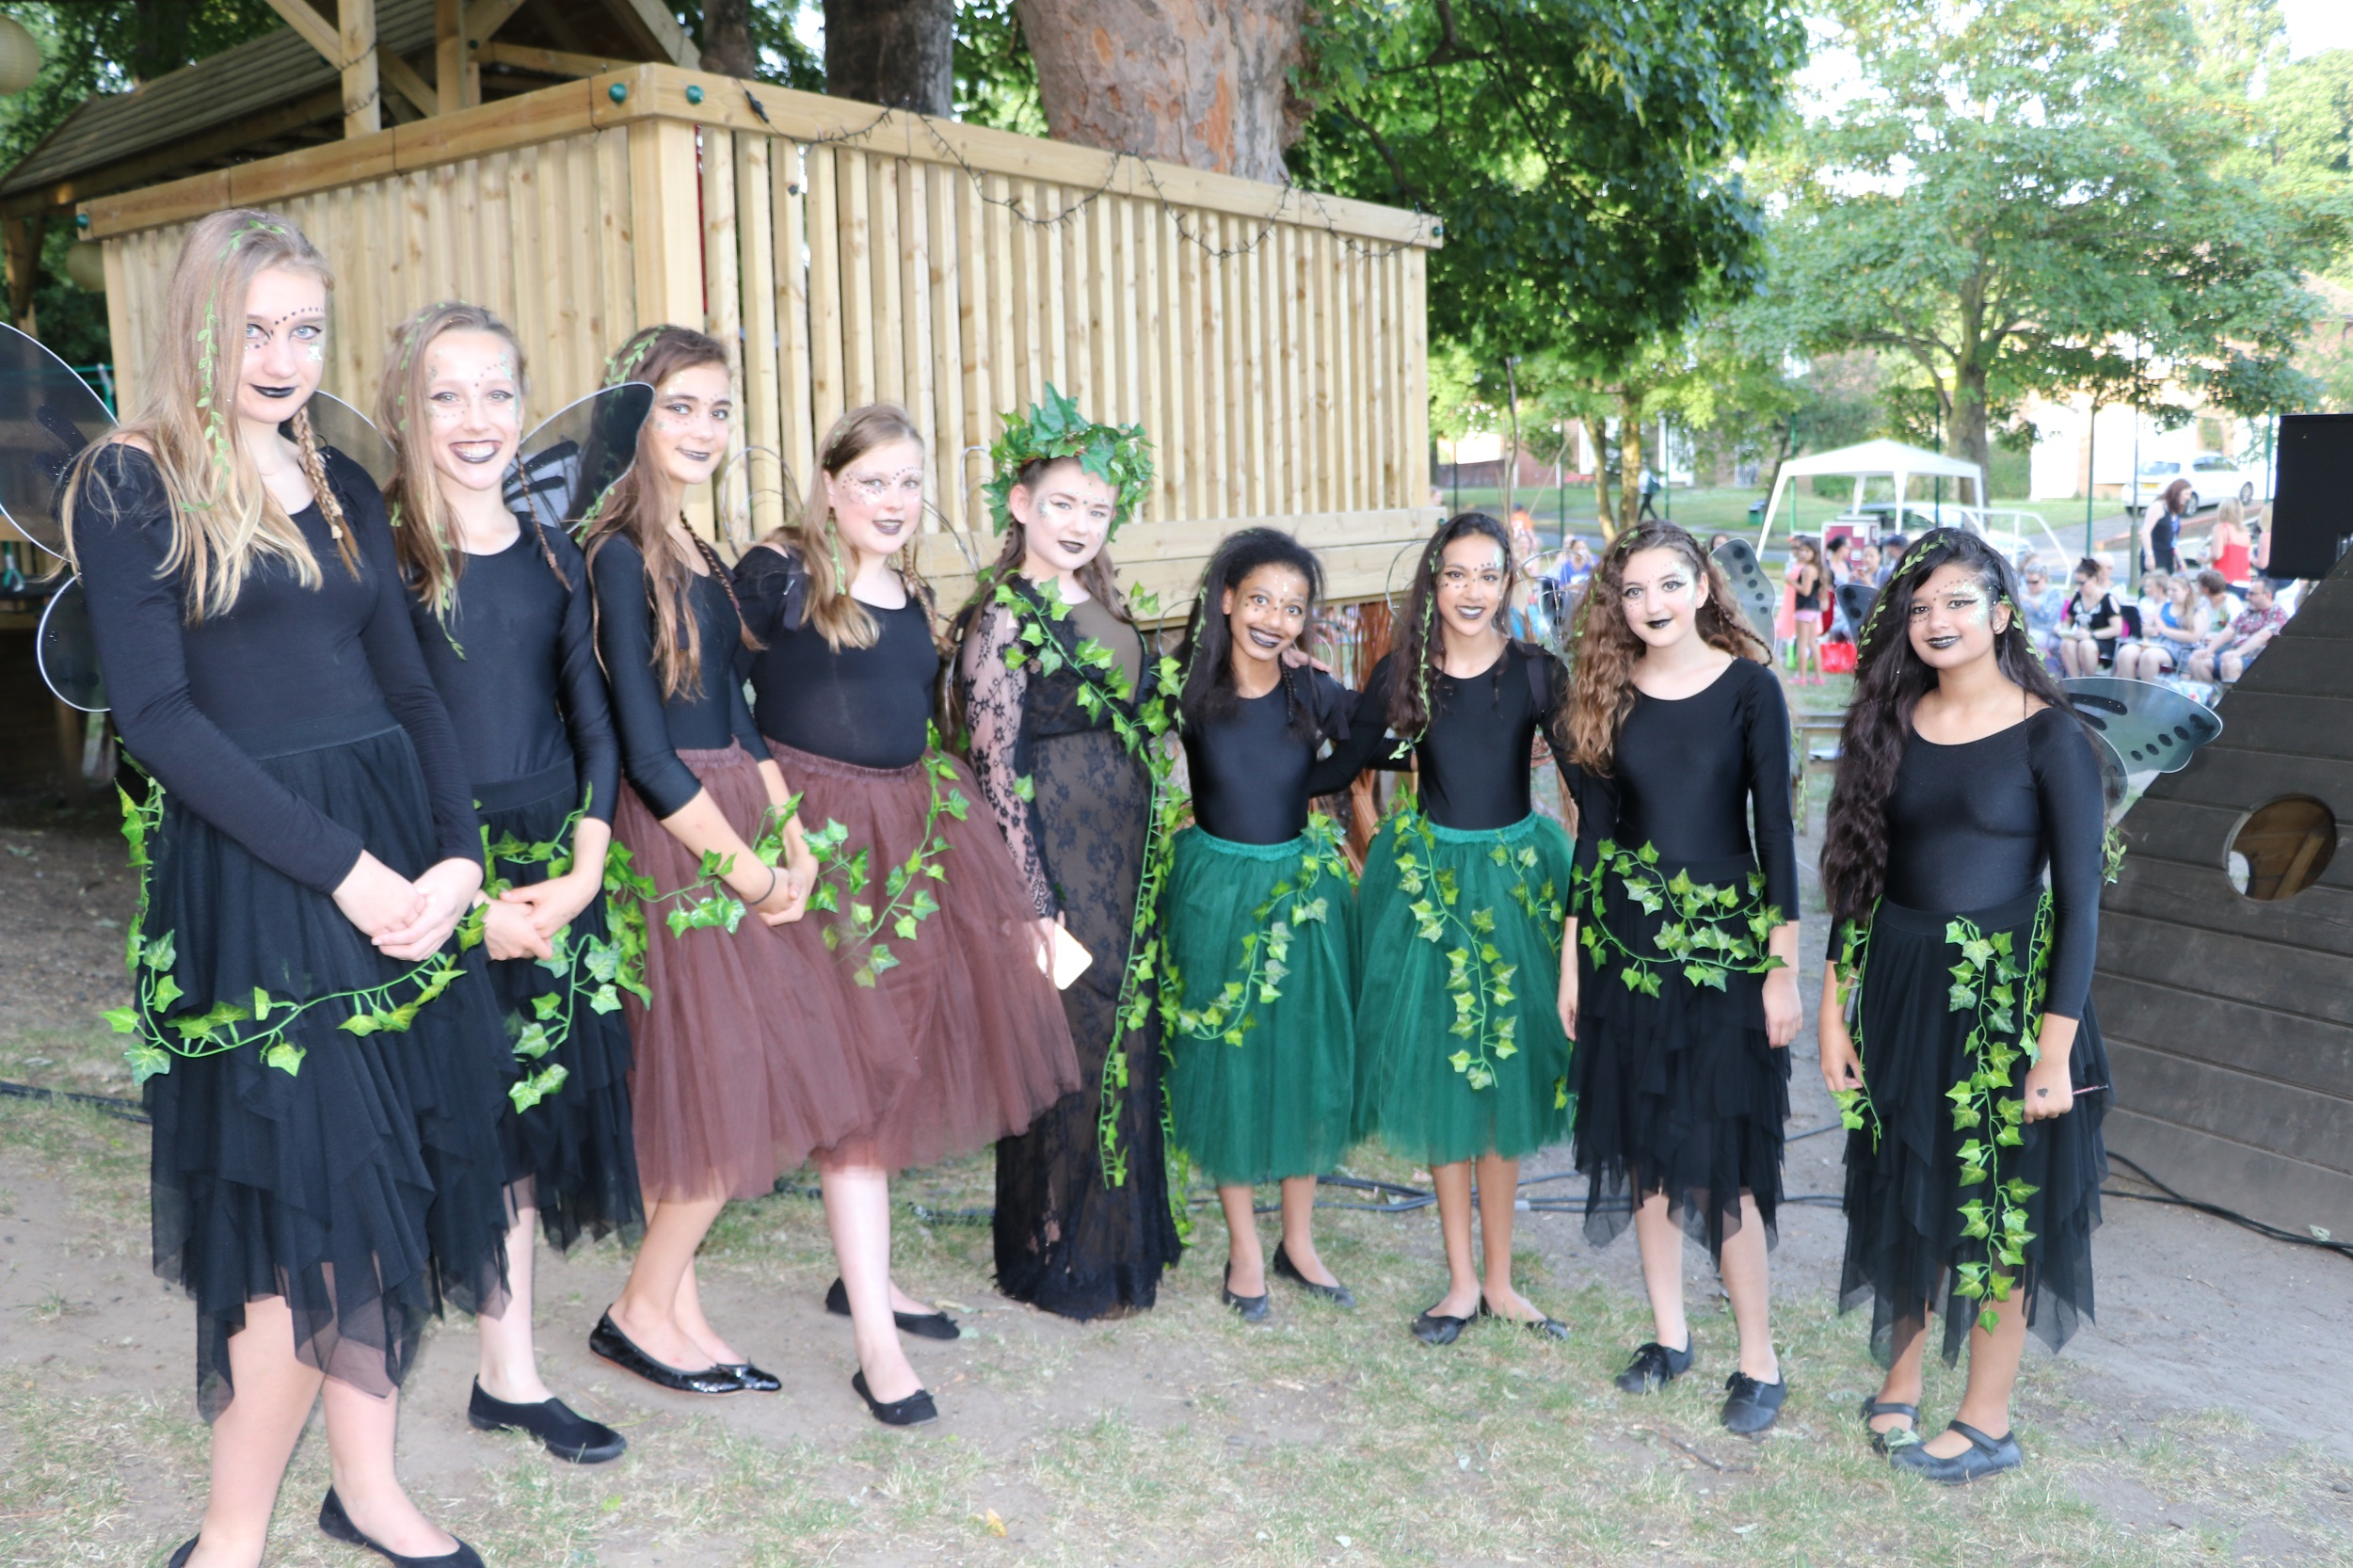 Fairies ready for Midsummer Night's Dream Performance